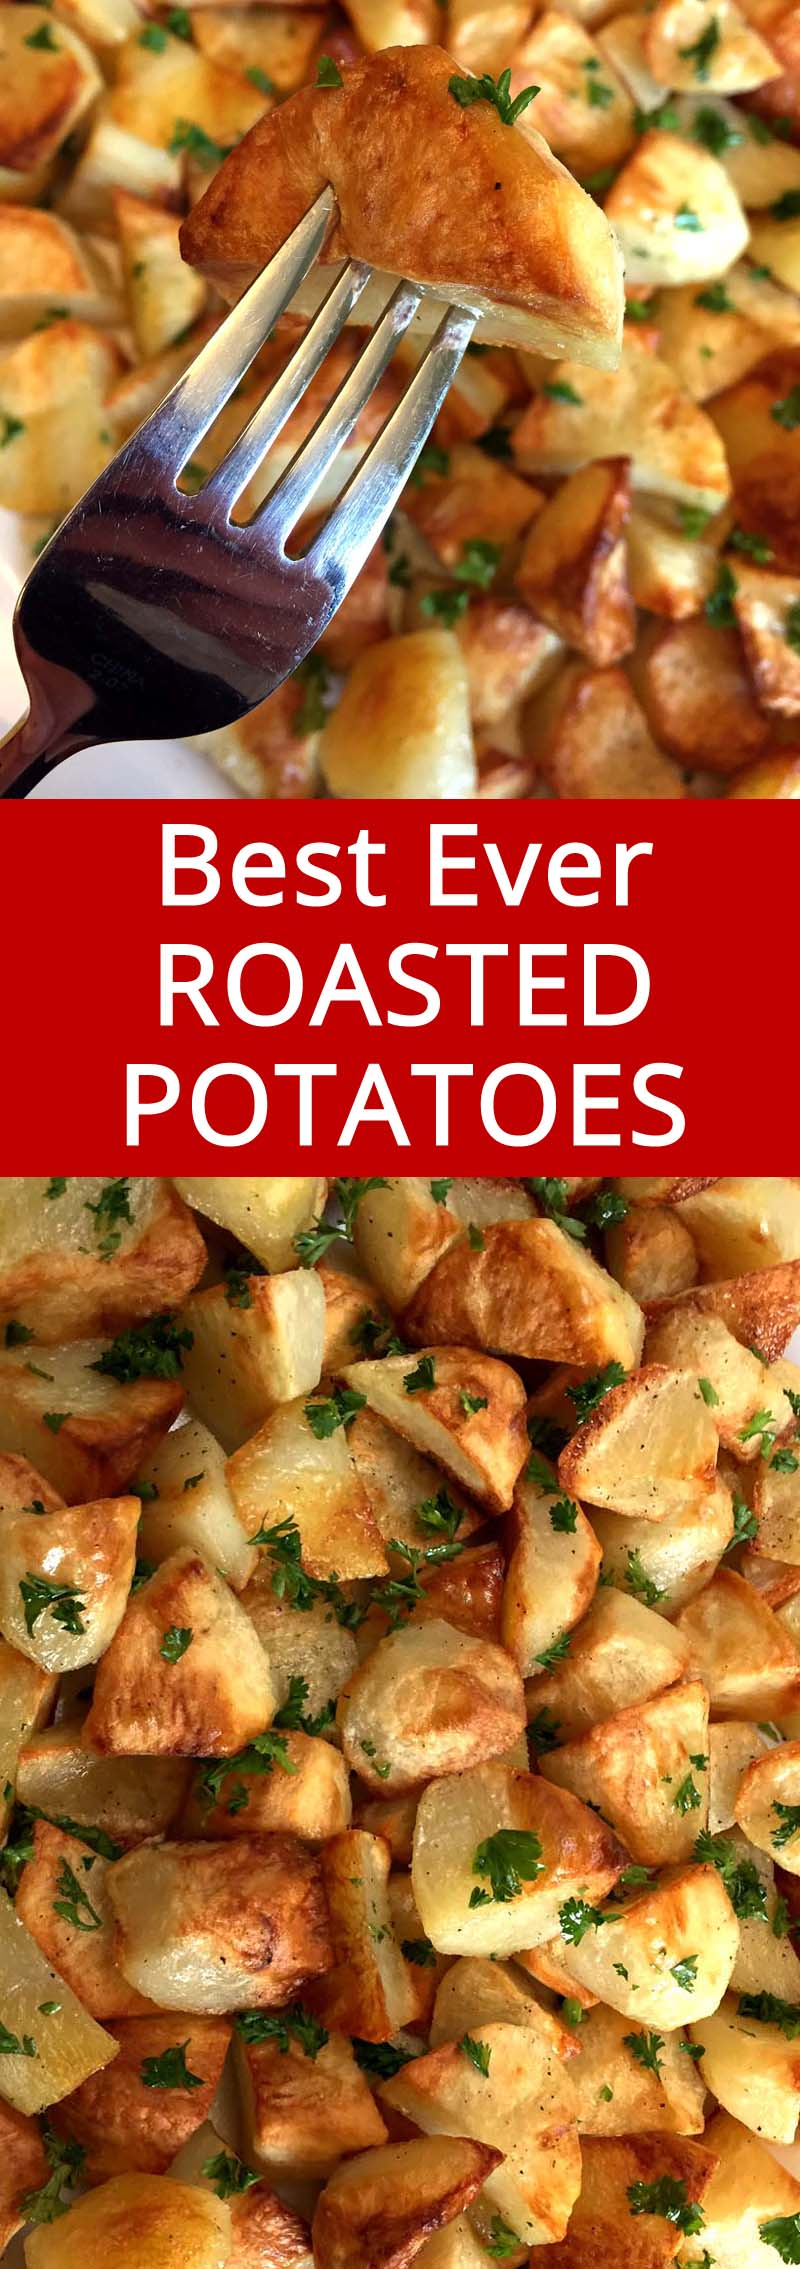 Arresting Se Oven Roasted Potatoes Are So Easy To Ly Genbrown Easy Oven Roasted Potatoes Recipe Melanie Cooks Fried Red Potatoes Onions Calories Fried Potatoes Red Or nice food Fried Red Potatoes